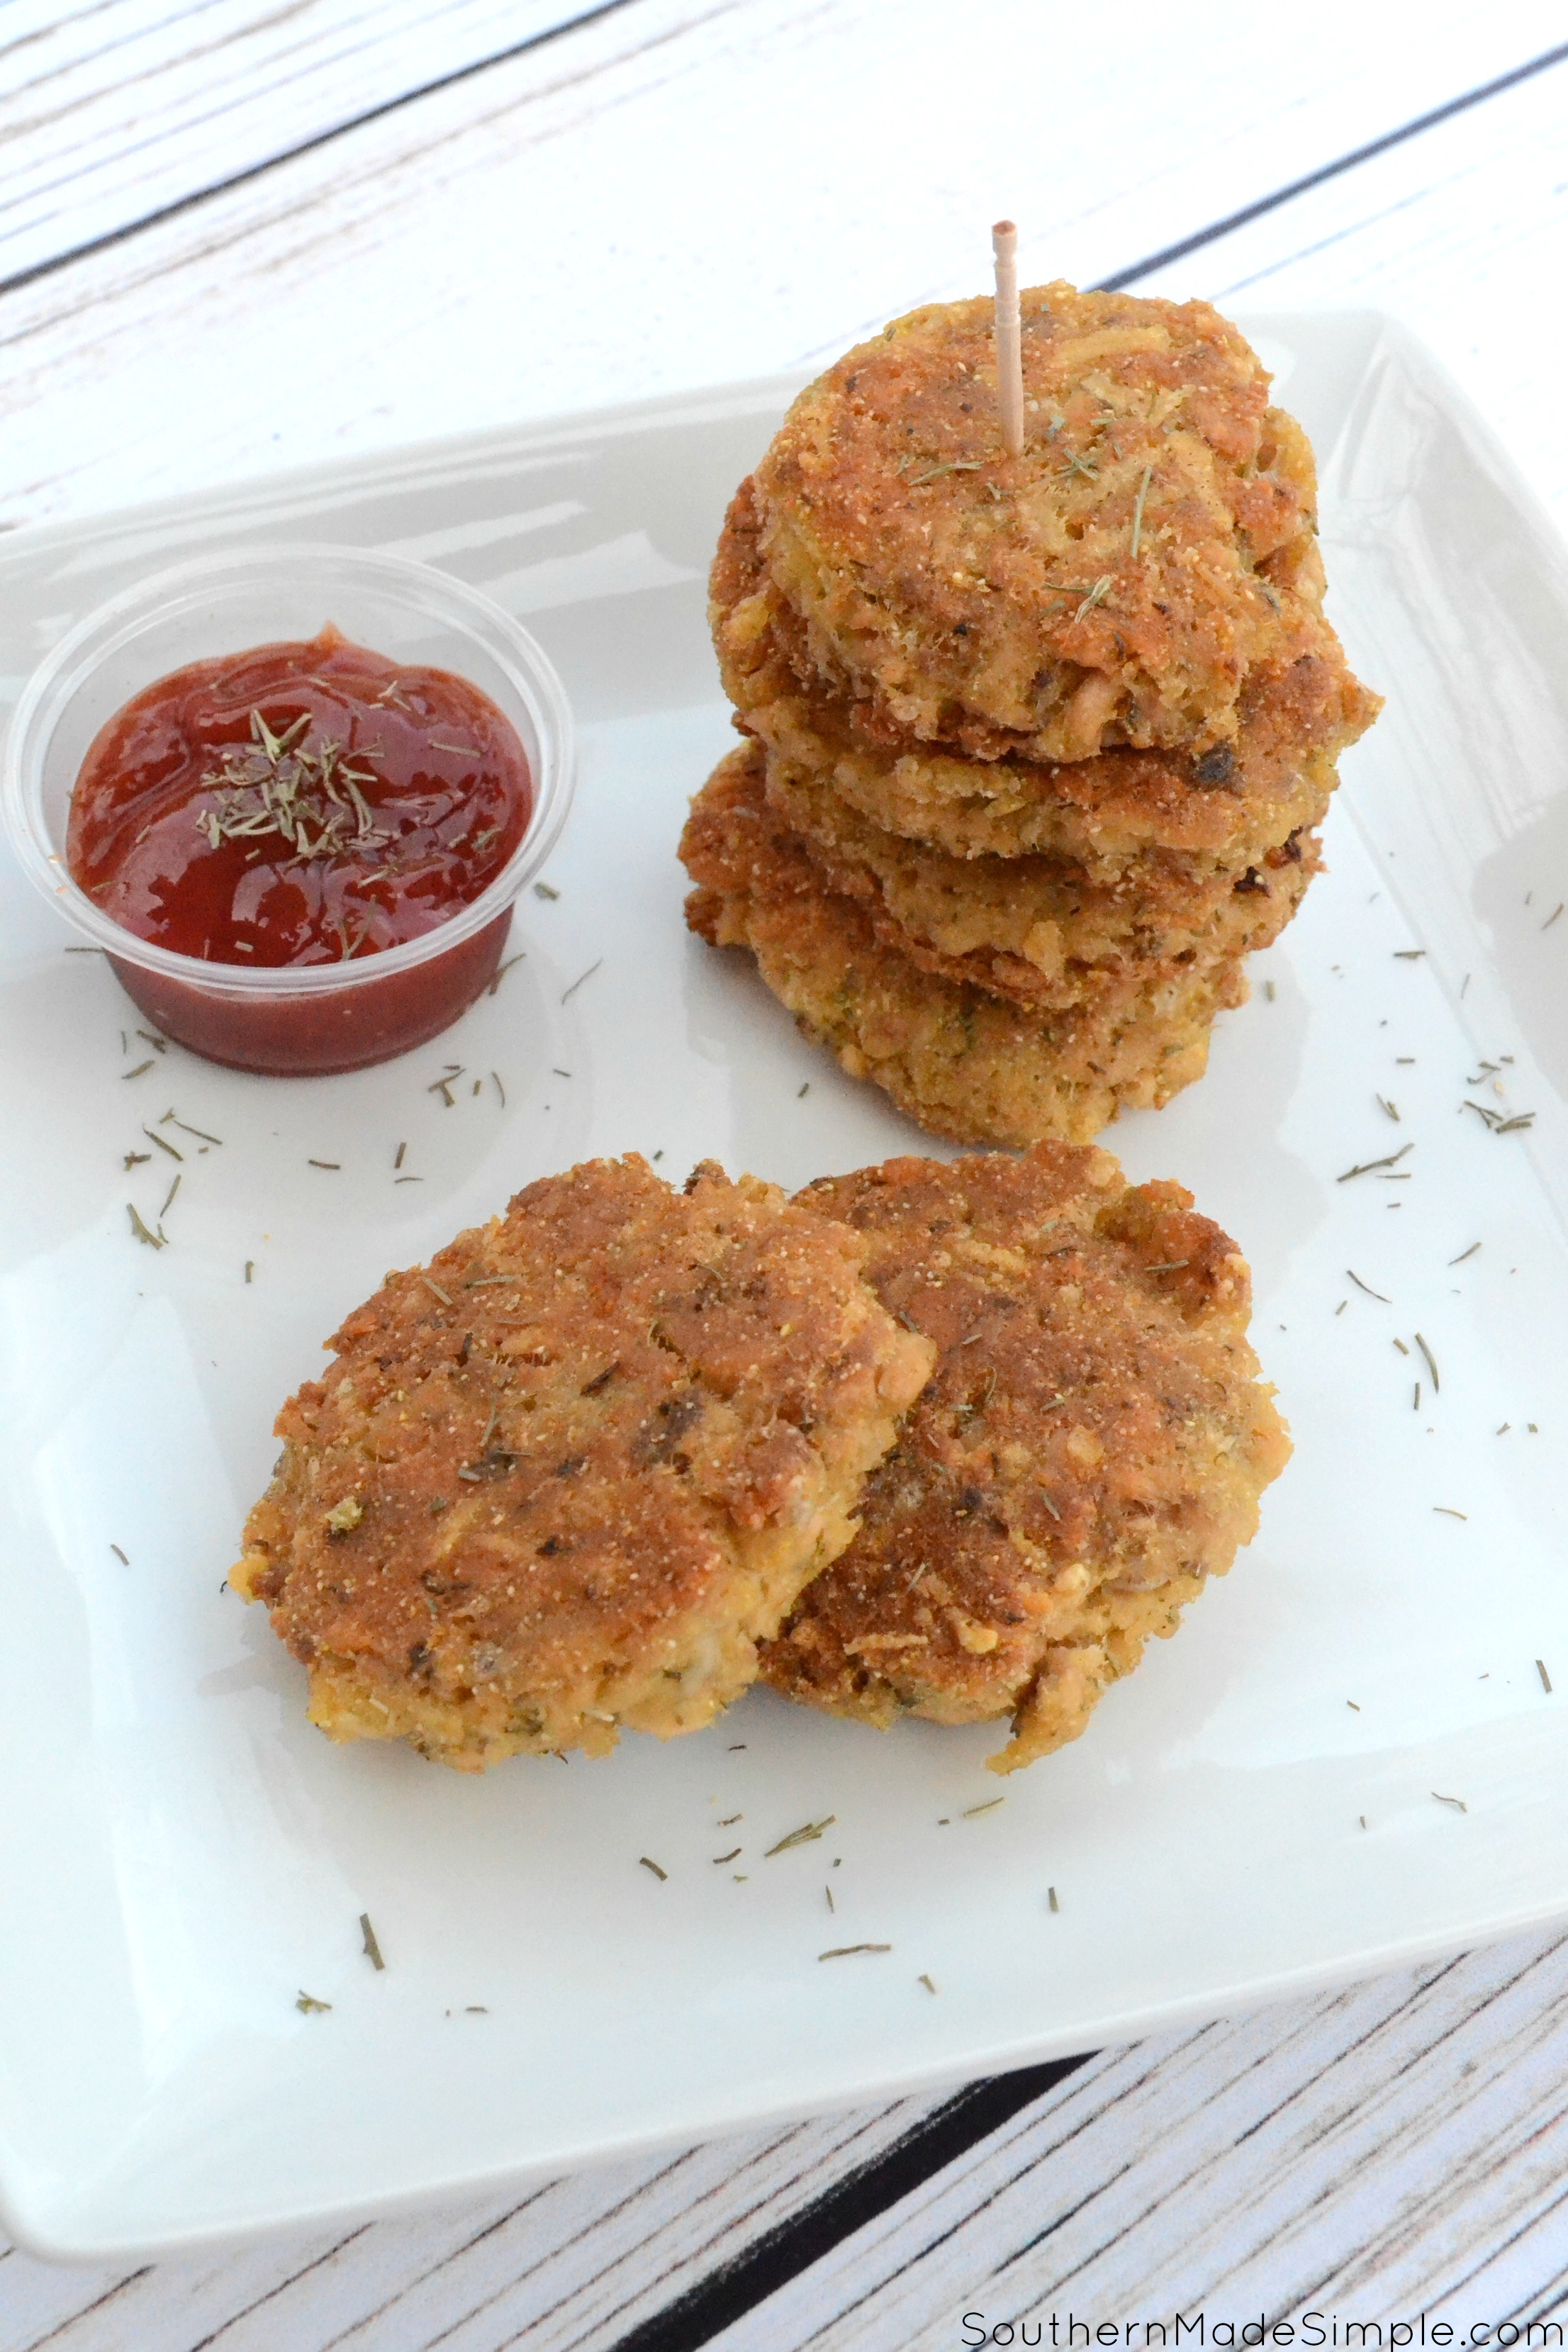 Southern Style Salmon Croquettes - a delicious meal that's easy to make, inexpensive and full of flavor the whole family will love!